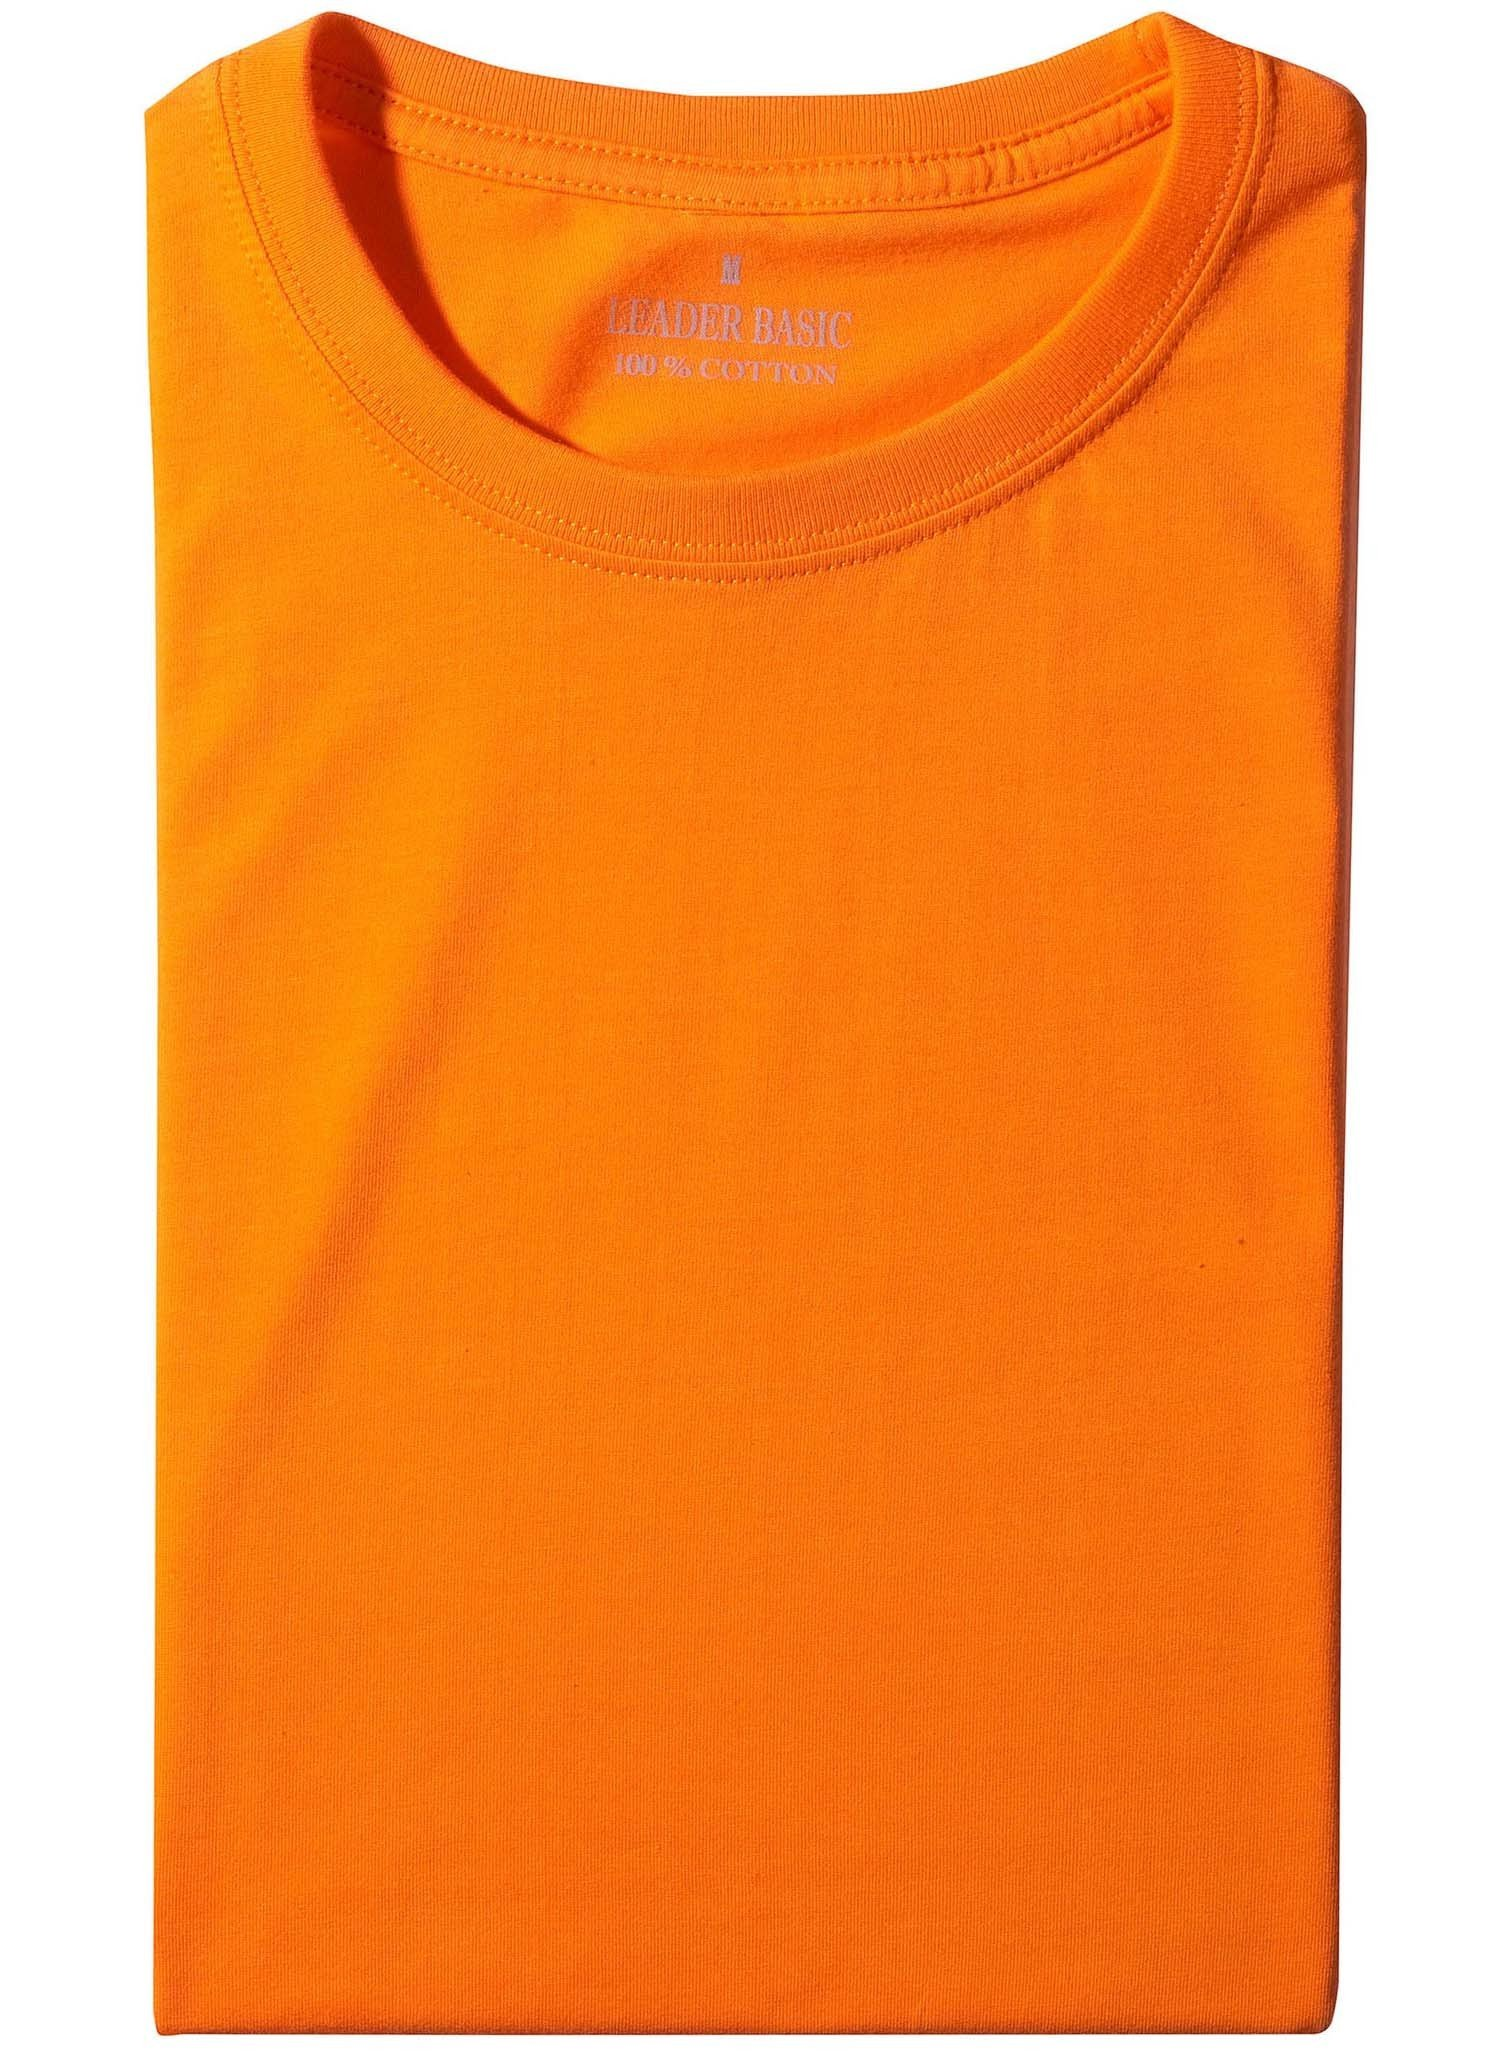 U-Duo-Pack-Shirt orange XXXL 022 - 1 - Ronja.ch